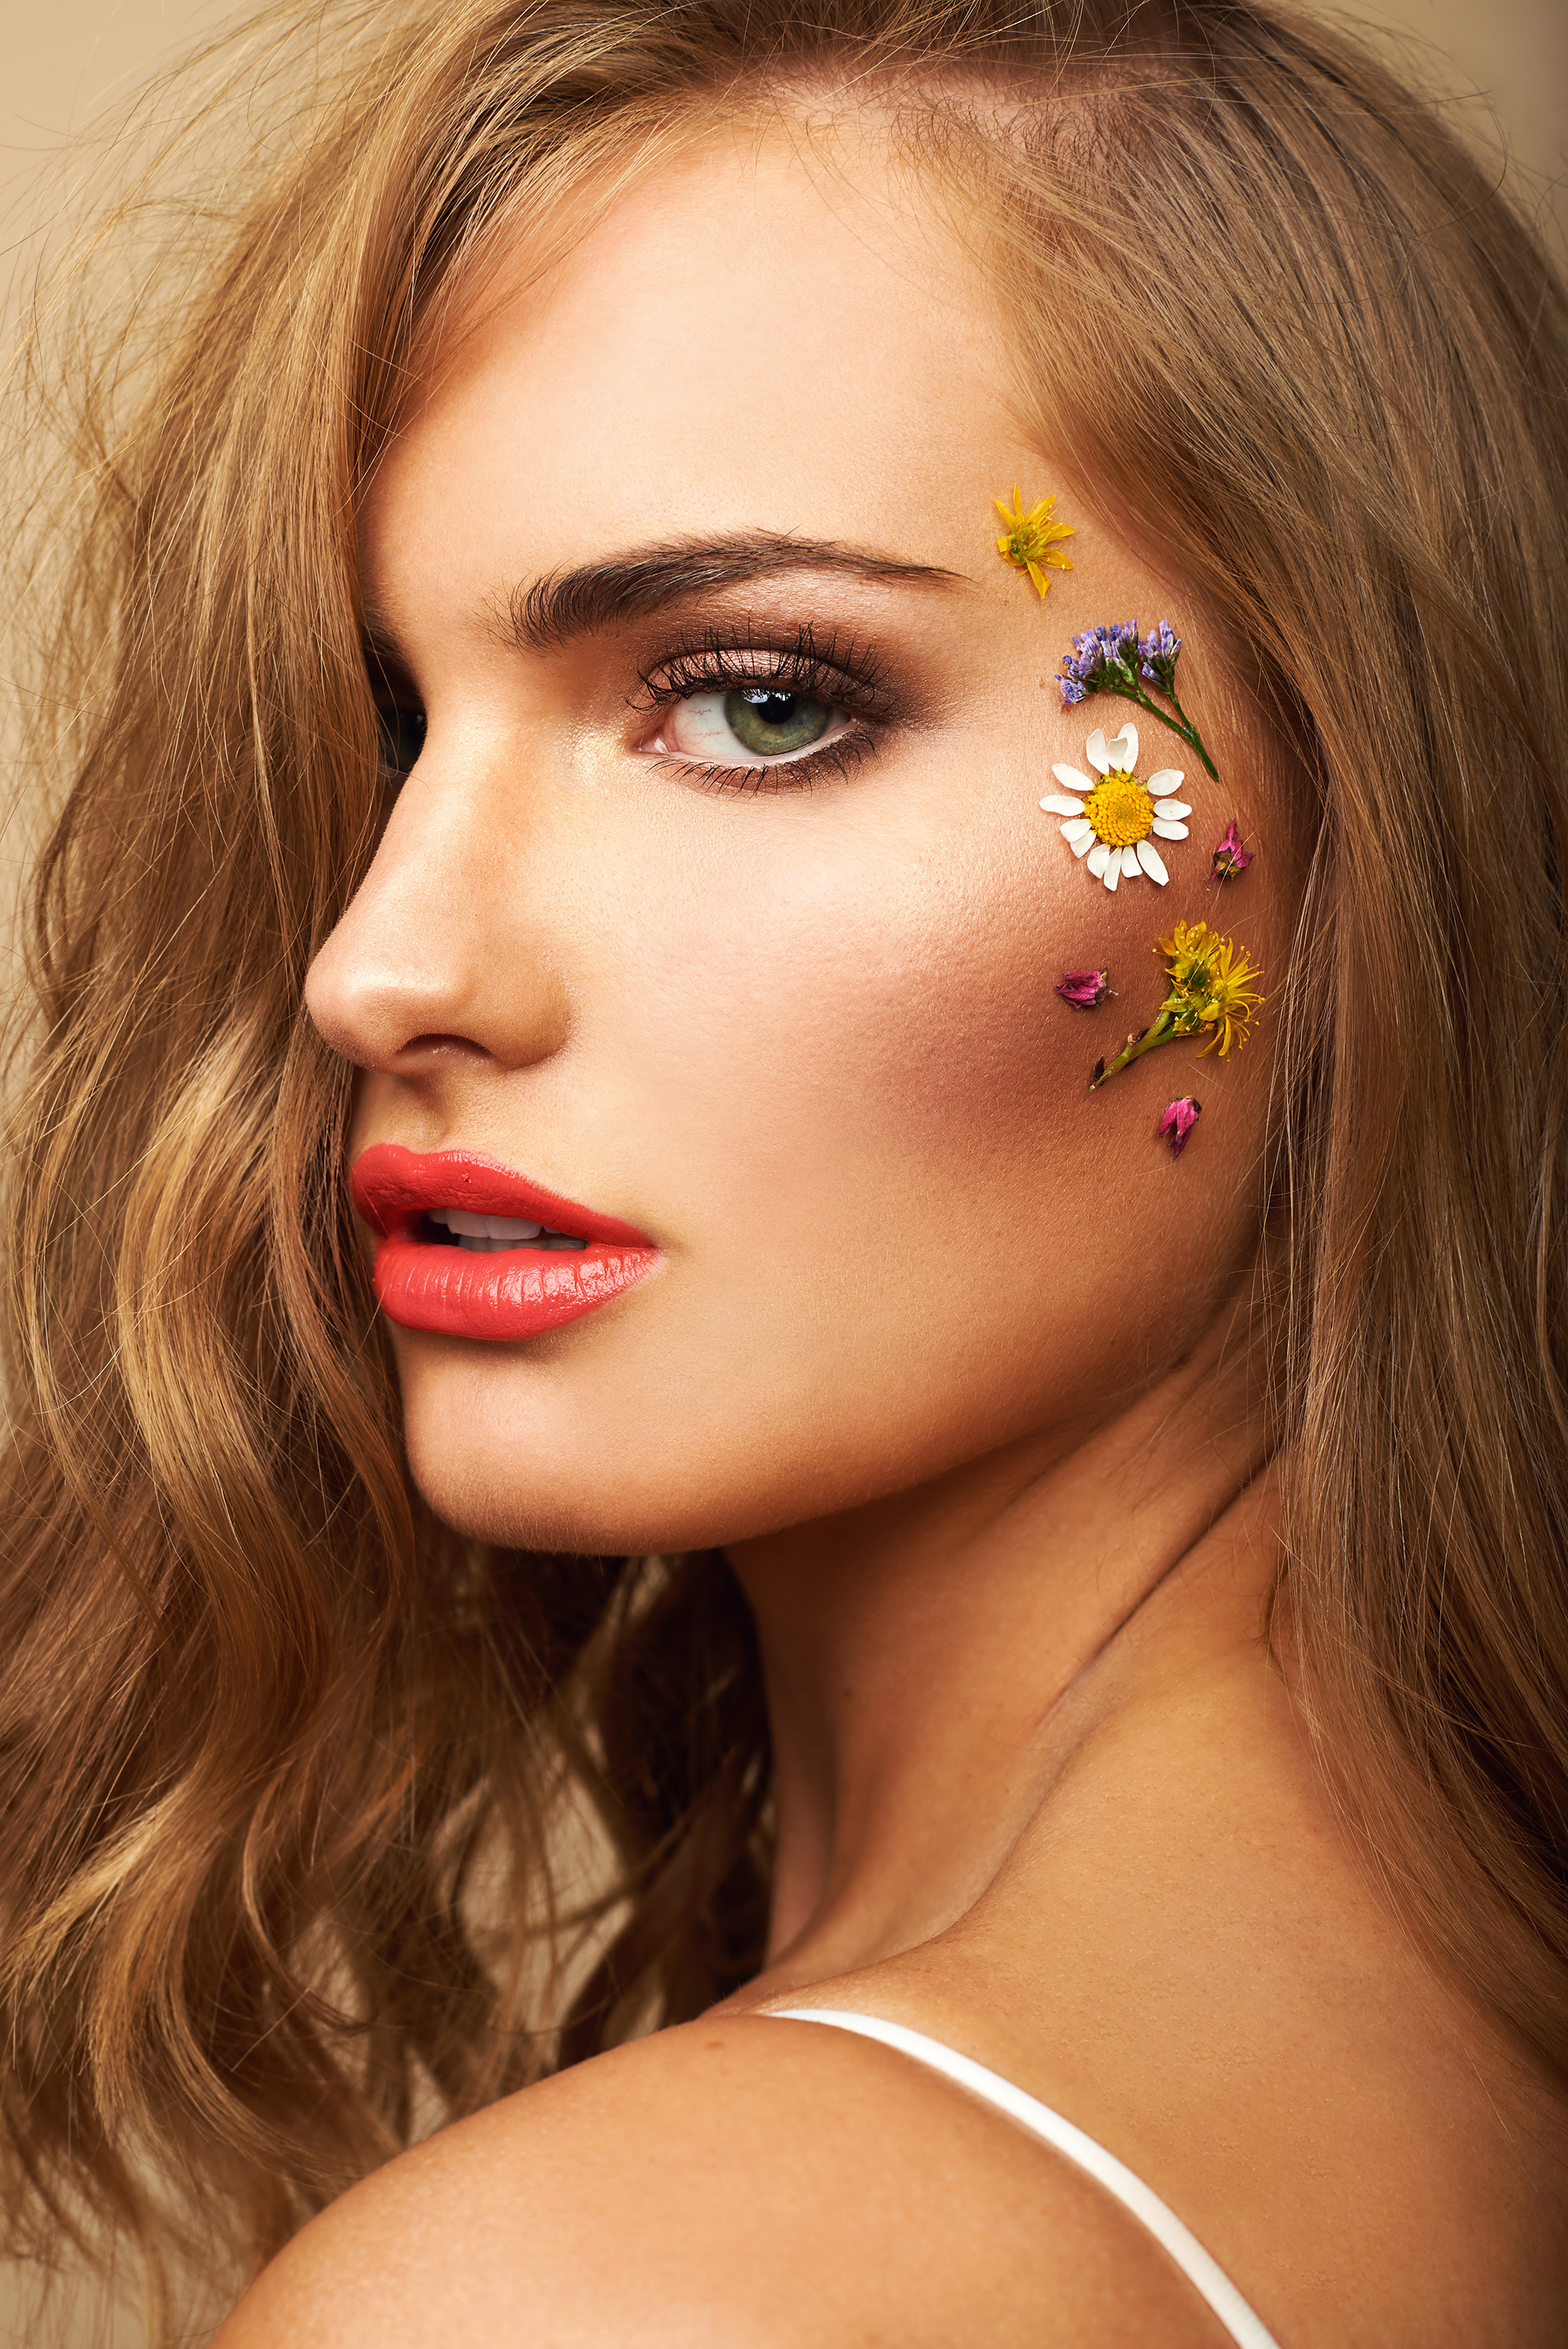 Natural Makeup with Highlighted, Glowing, Dewy Skin And Pressed Flowers by Jaynelle Lording